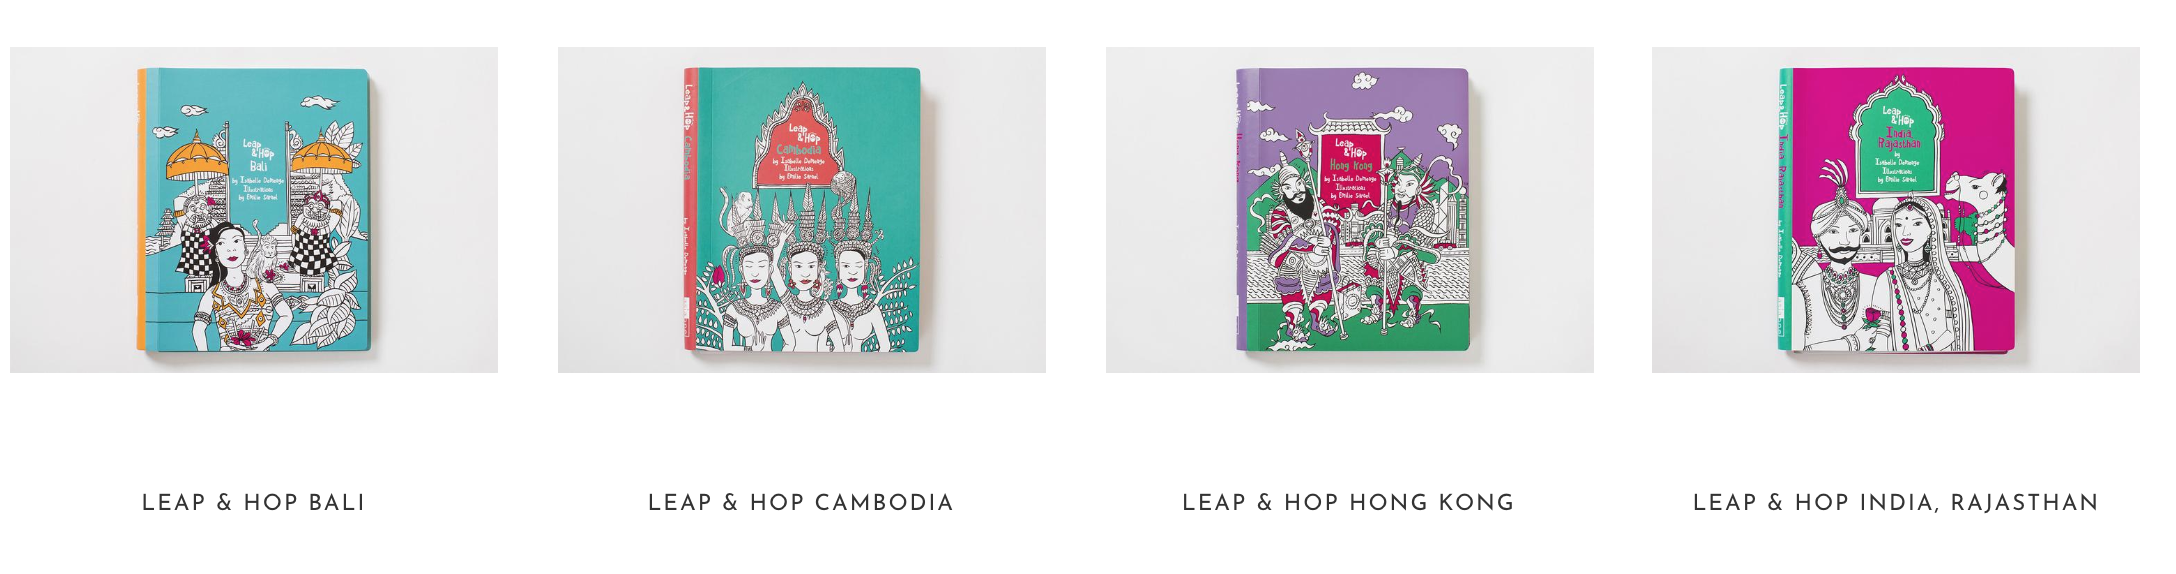 Leap and Hop Series